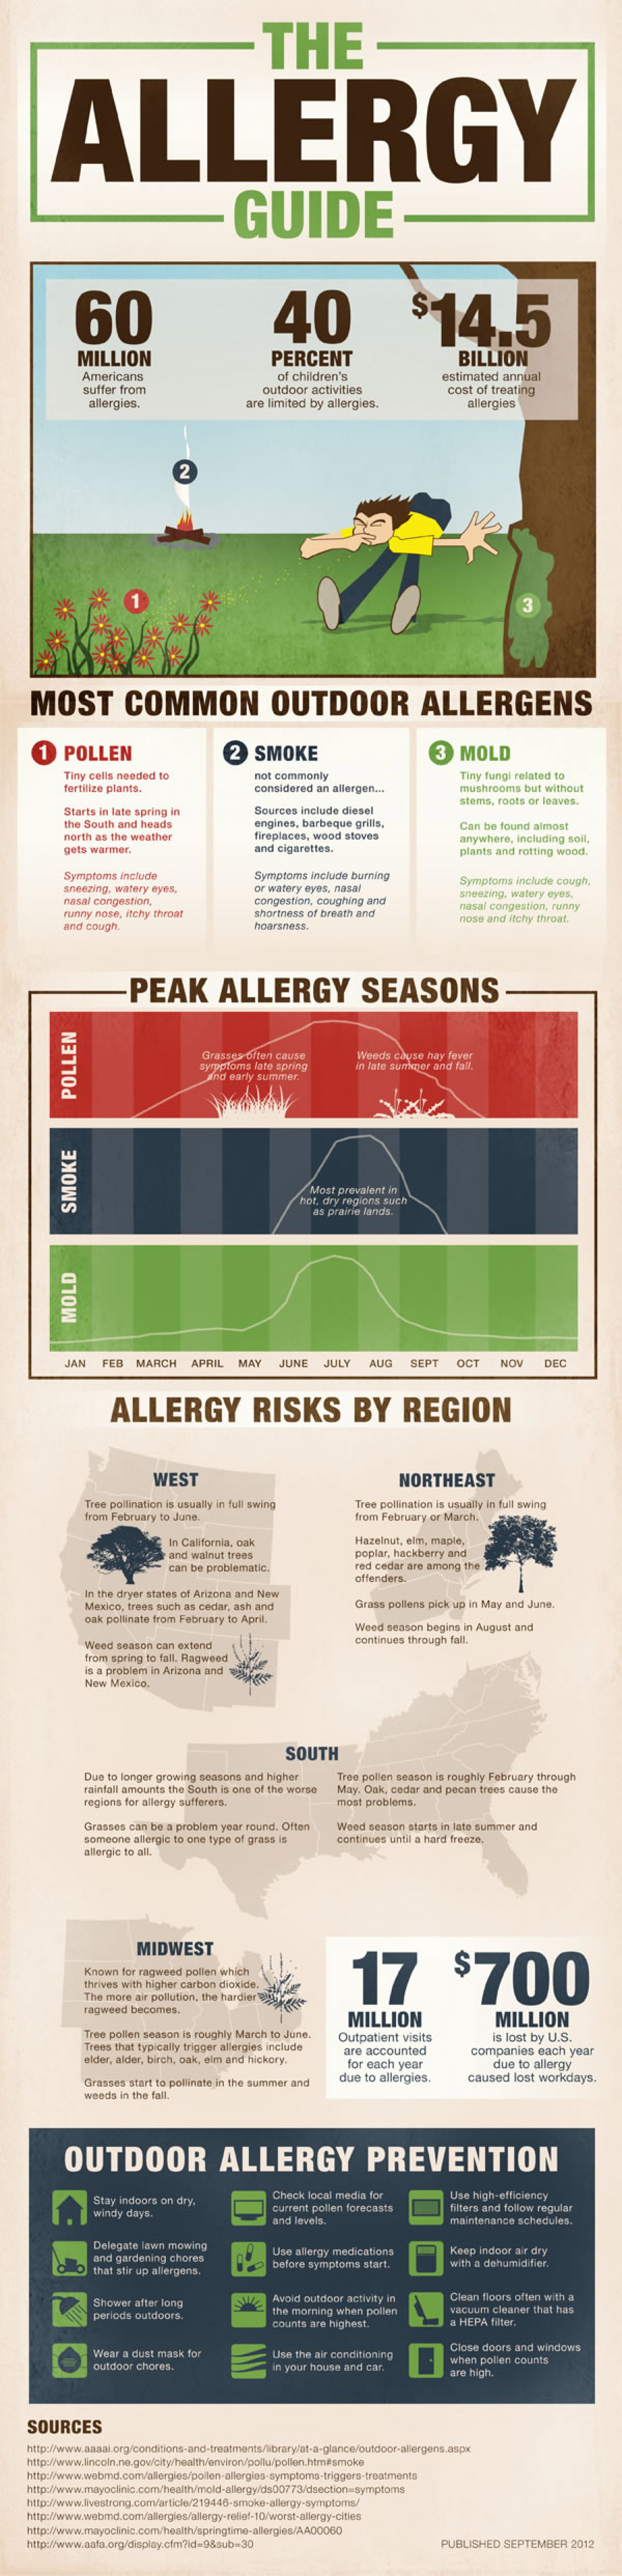 The Allergy Guide Infographic